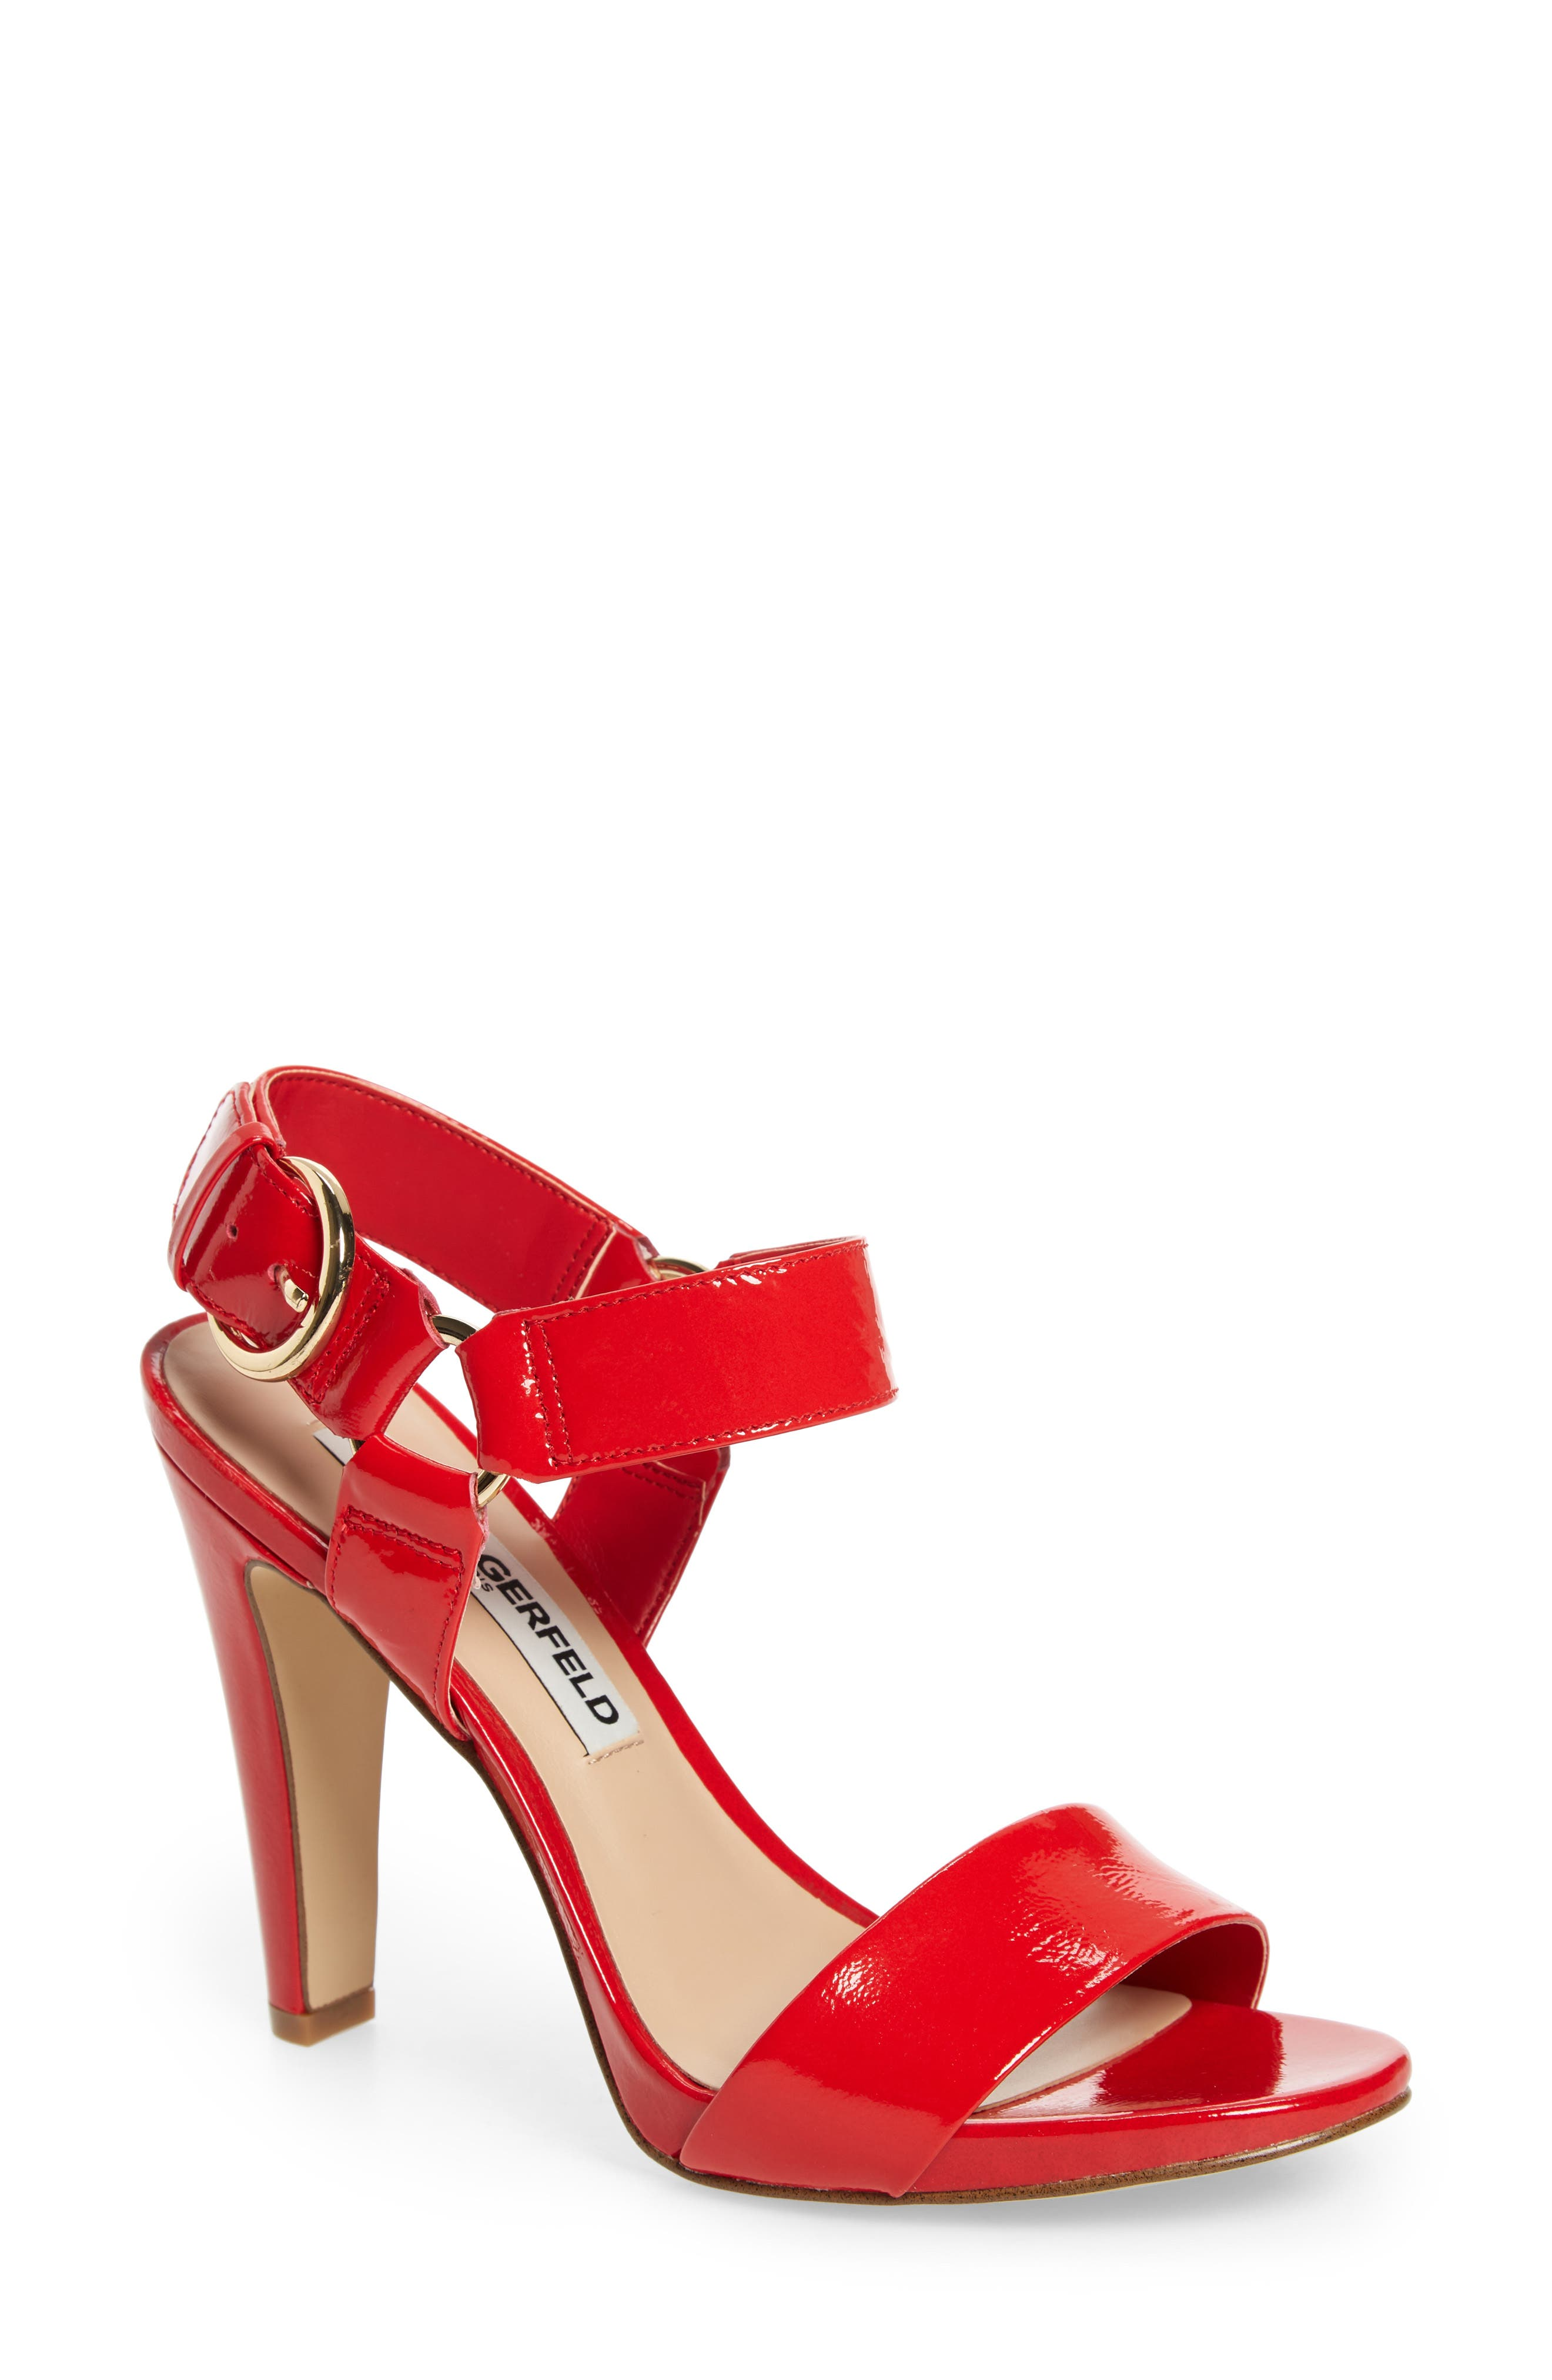 Cieone Sandal,                             Main thumbnail 1, color,                             RED PATENT